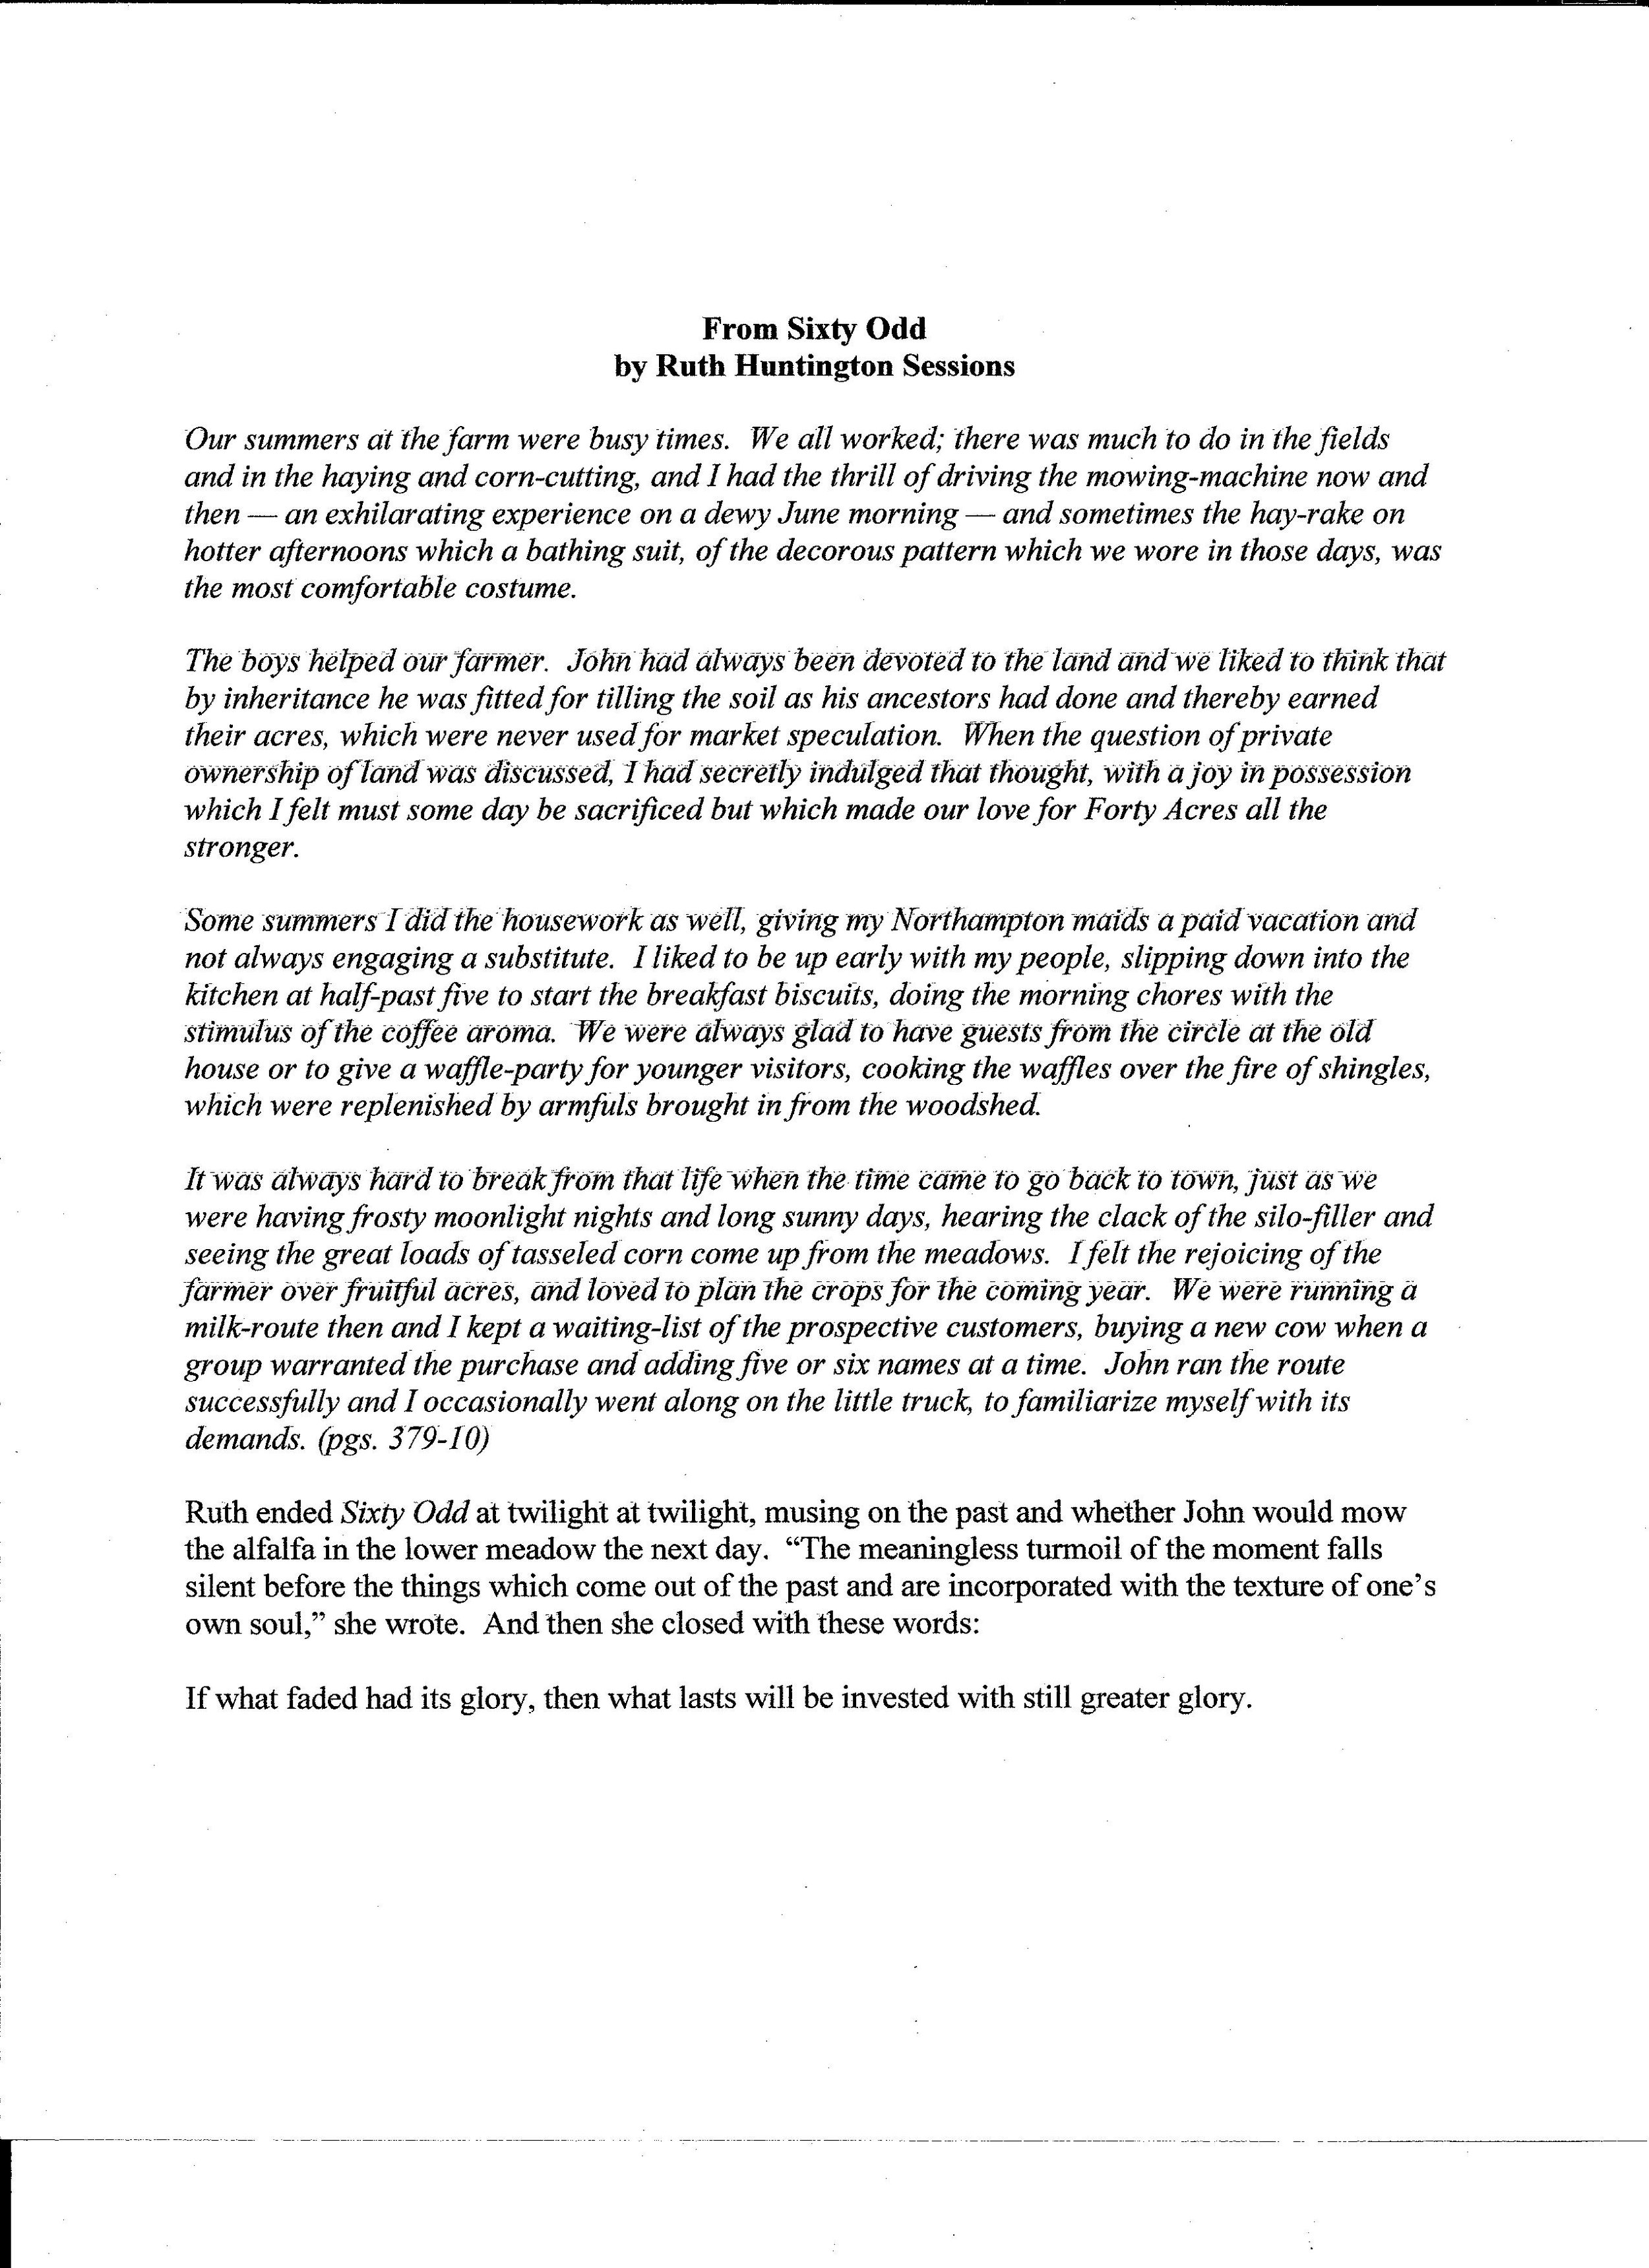 PPH Member Letter May 2018 page 2 001 (1).jpg